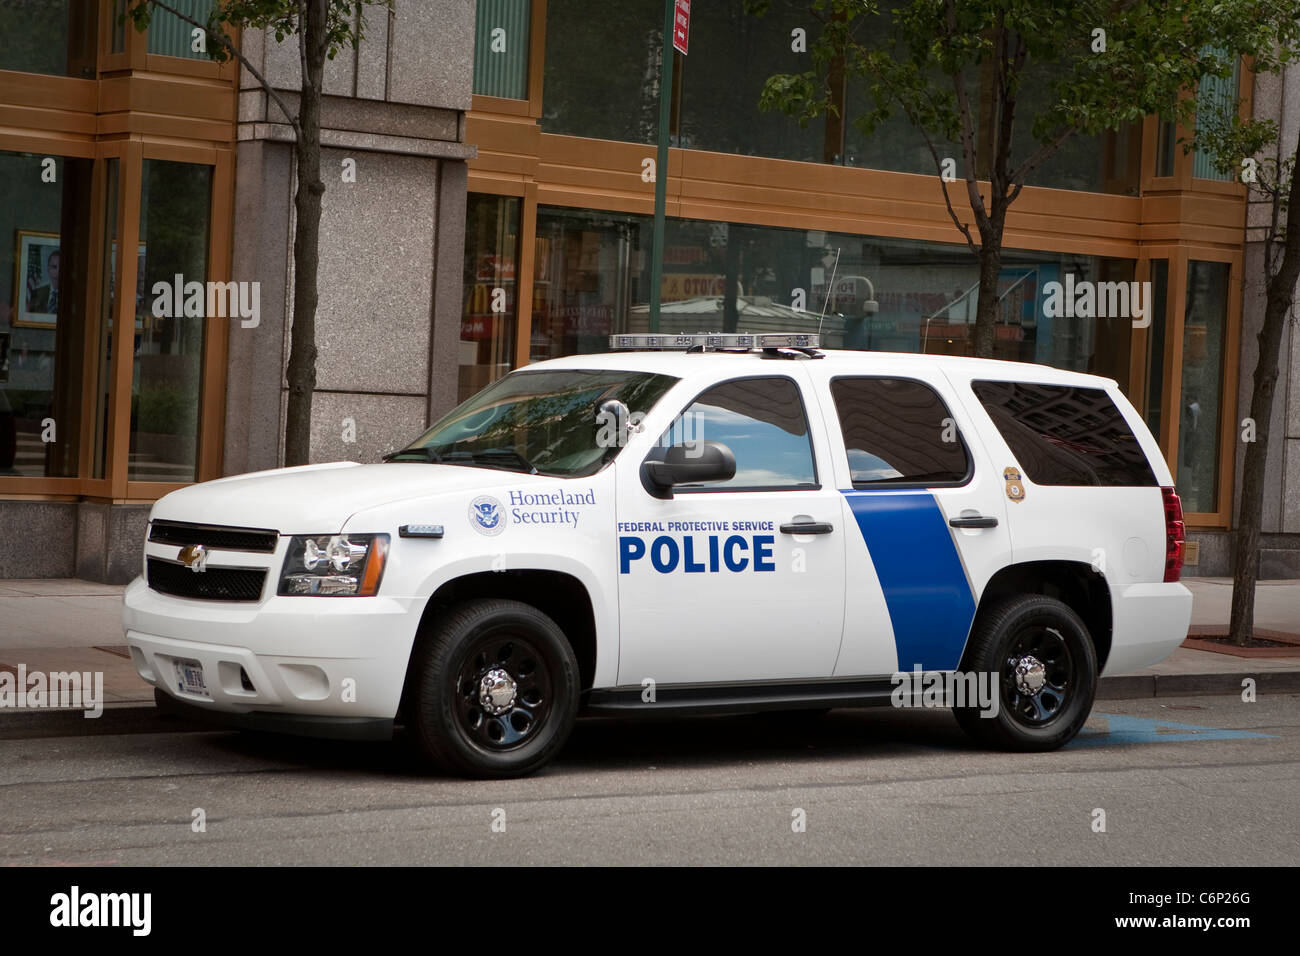 A Homeland Security police car of the Federal Protective Service is parked by the Jacob K. Javits Federal Building - Stock Image